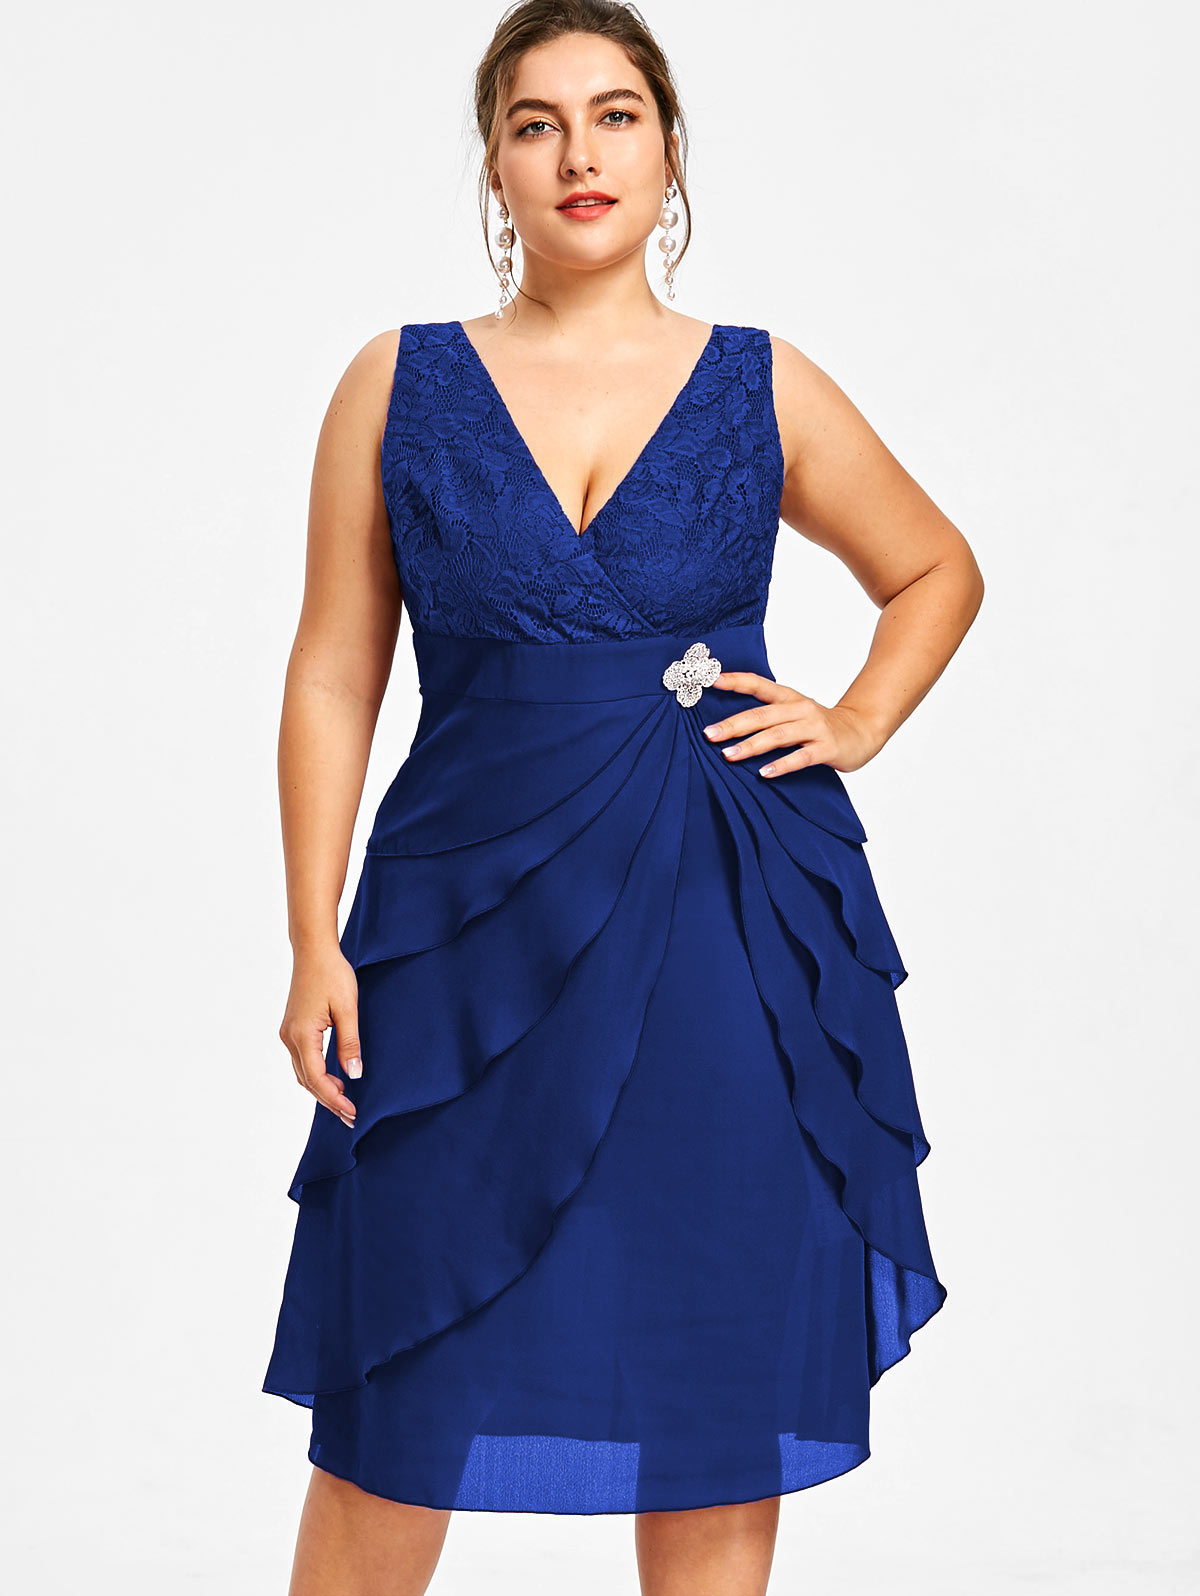 US $21.99 49% OFF|Gamiss Plus Size Sleeveless Tiered Dress With Brooch A  Line V Neck Solid Summer Dress 2018 Women Elegant Party Vestidos-in Dresses  ...